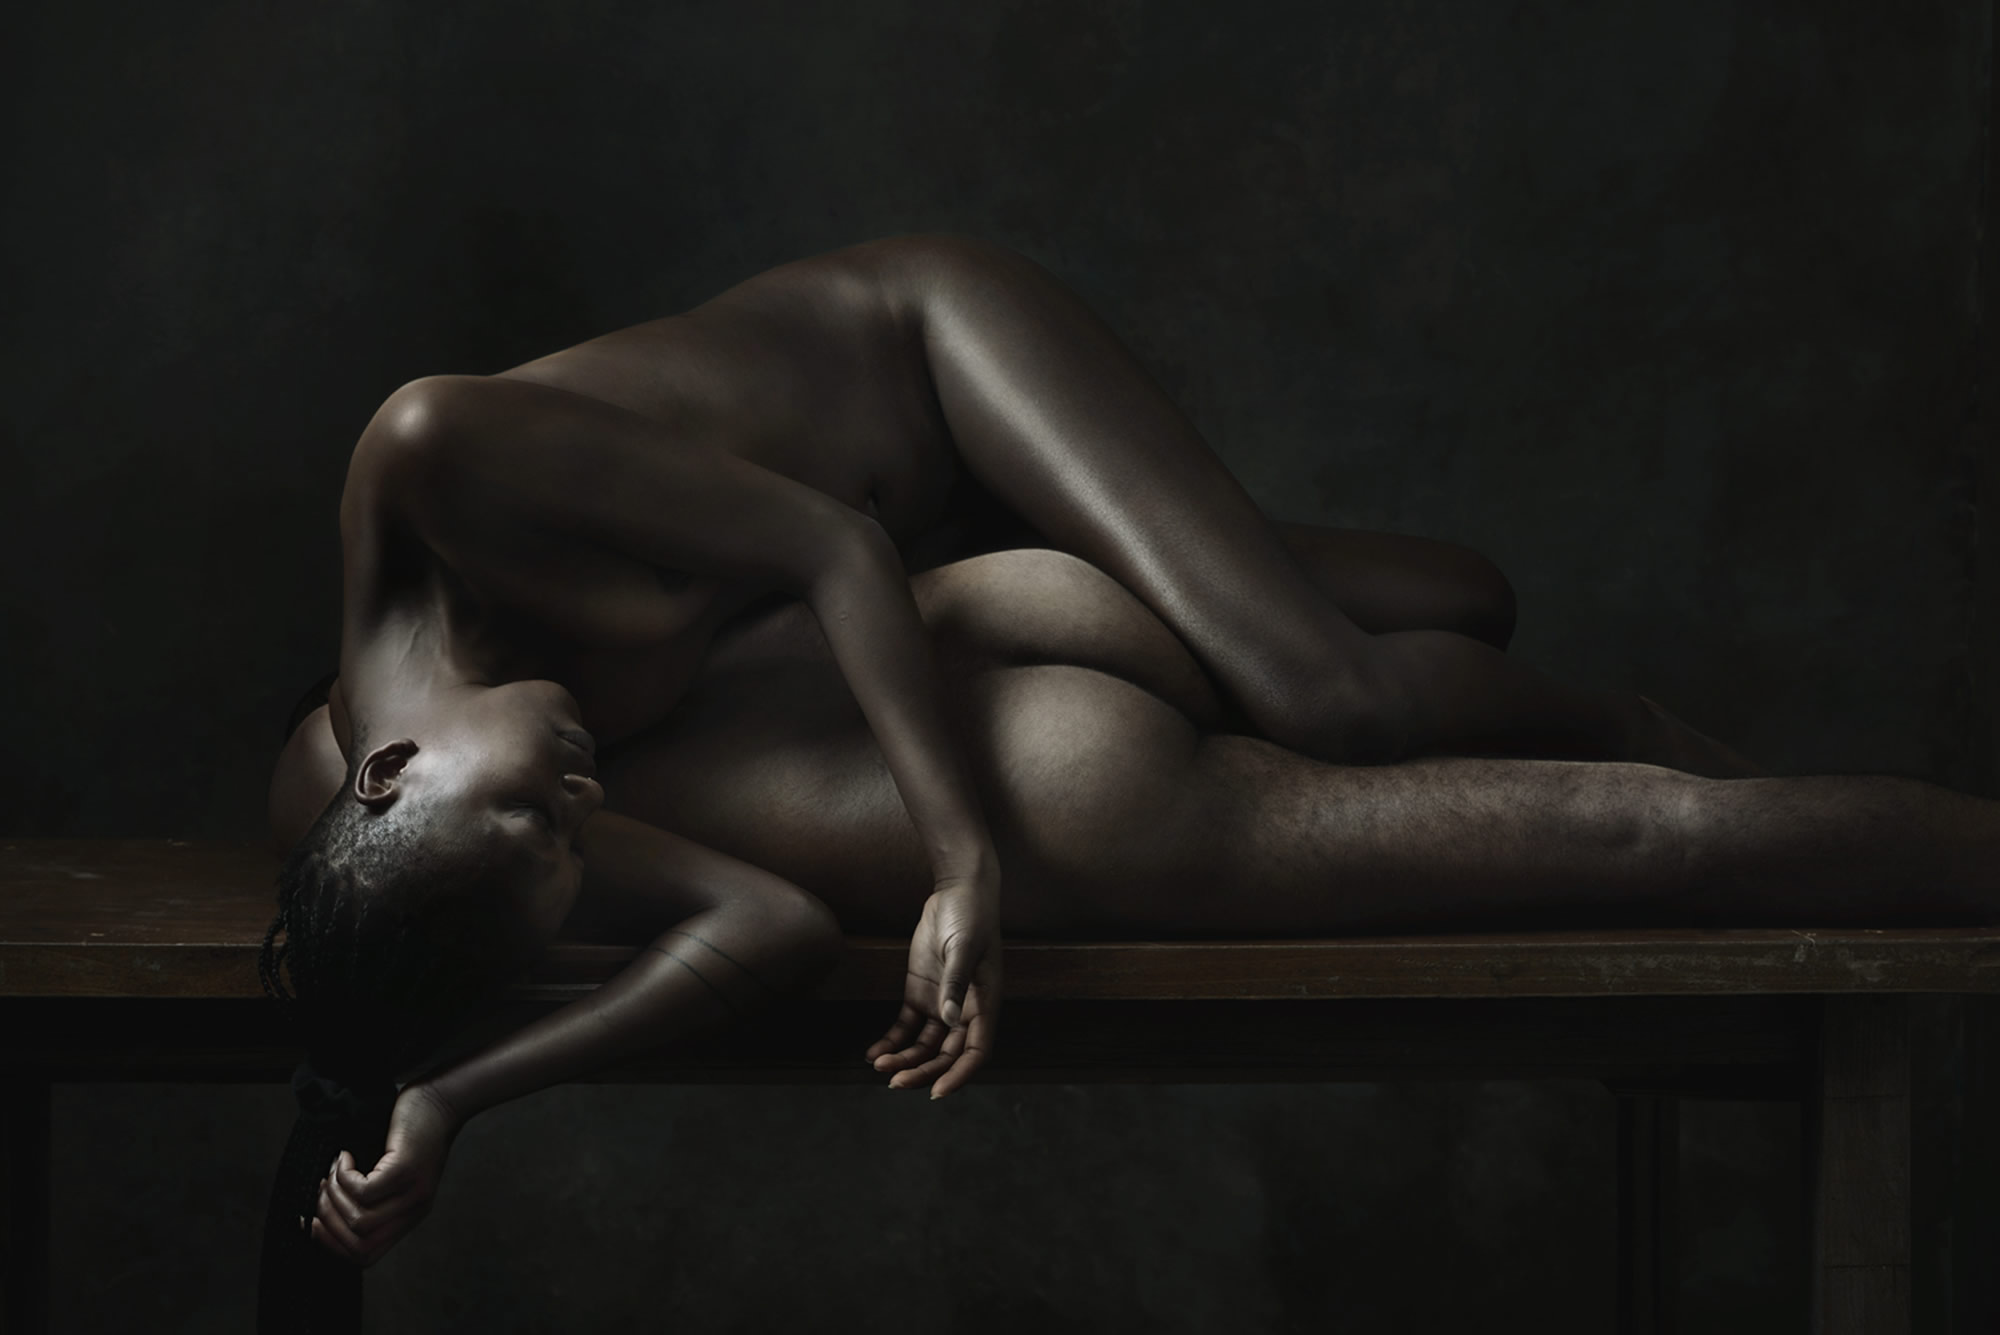 Stark Nude Tableaux Inhabit Olivier Valsecchi's Newest Photos